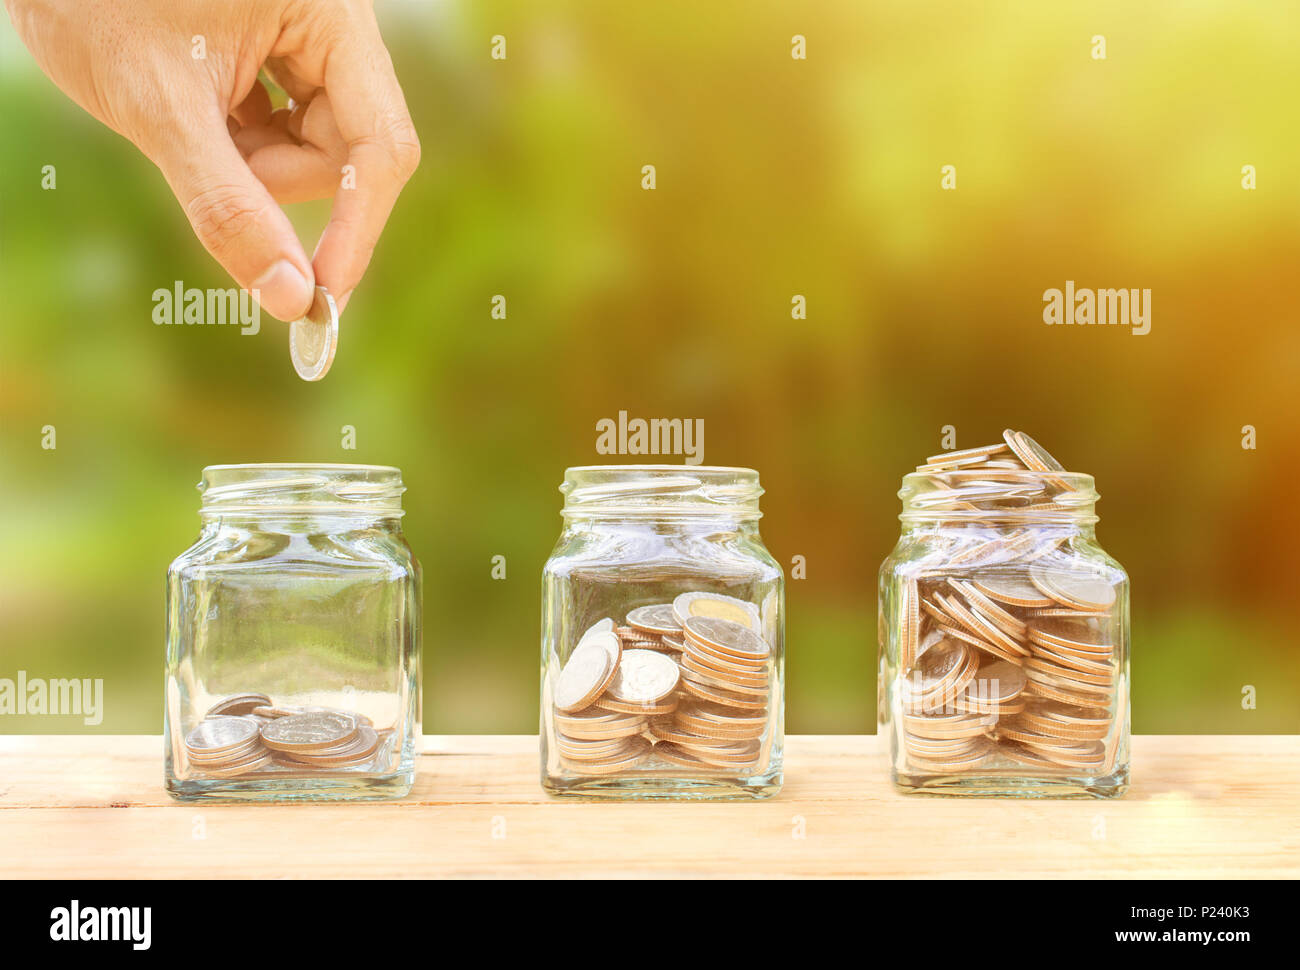 Saving and invest money concept. Conceptual hand putting coins into bottle on nature background. Business investment growth concept. Investing and int - Stock Image